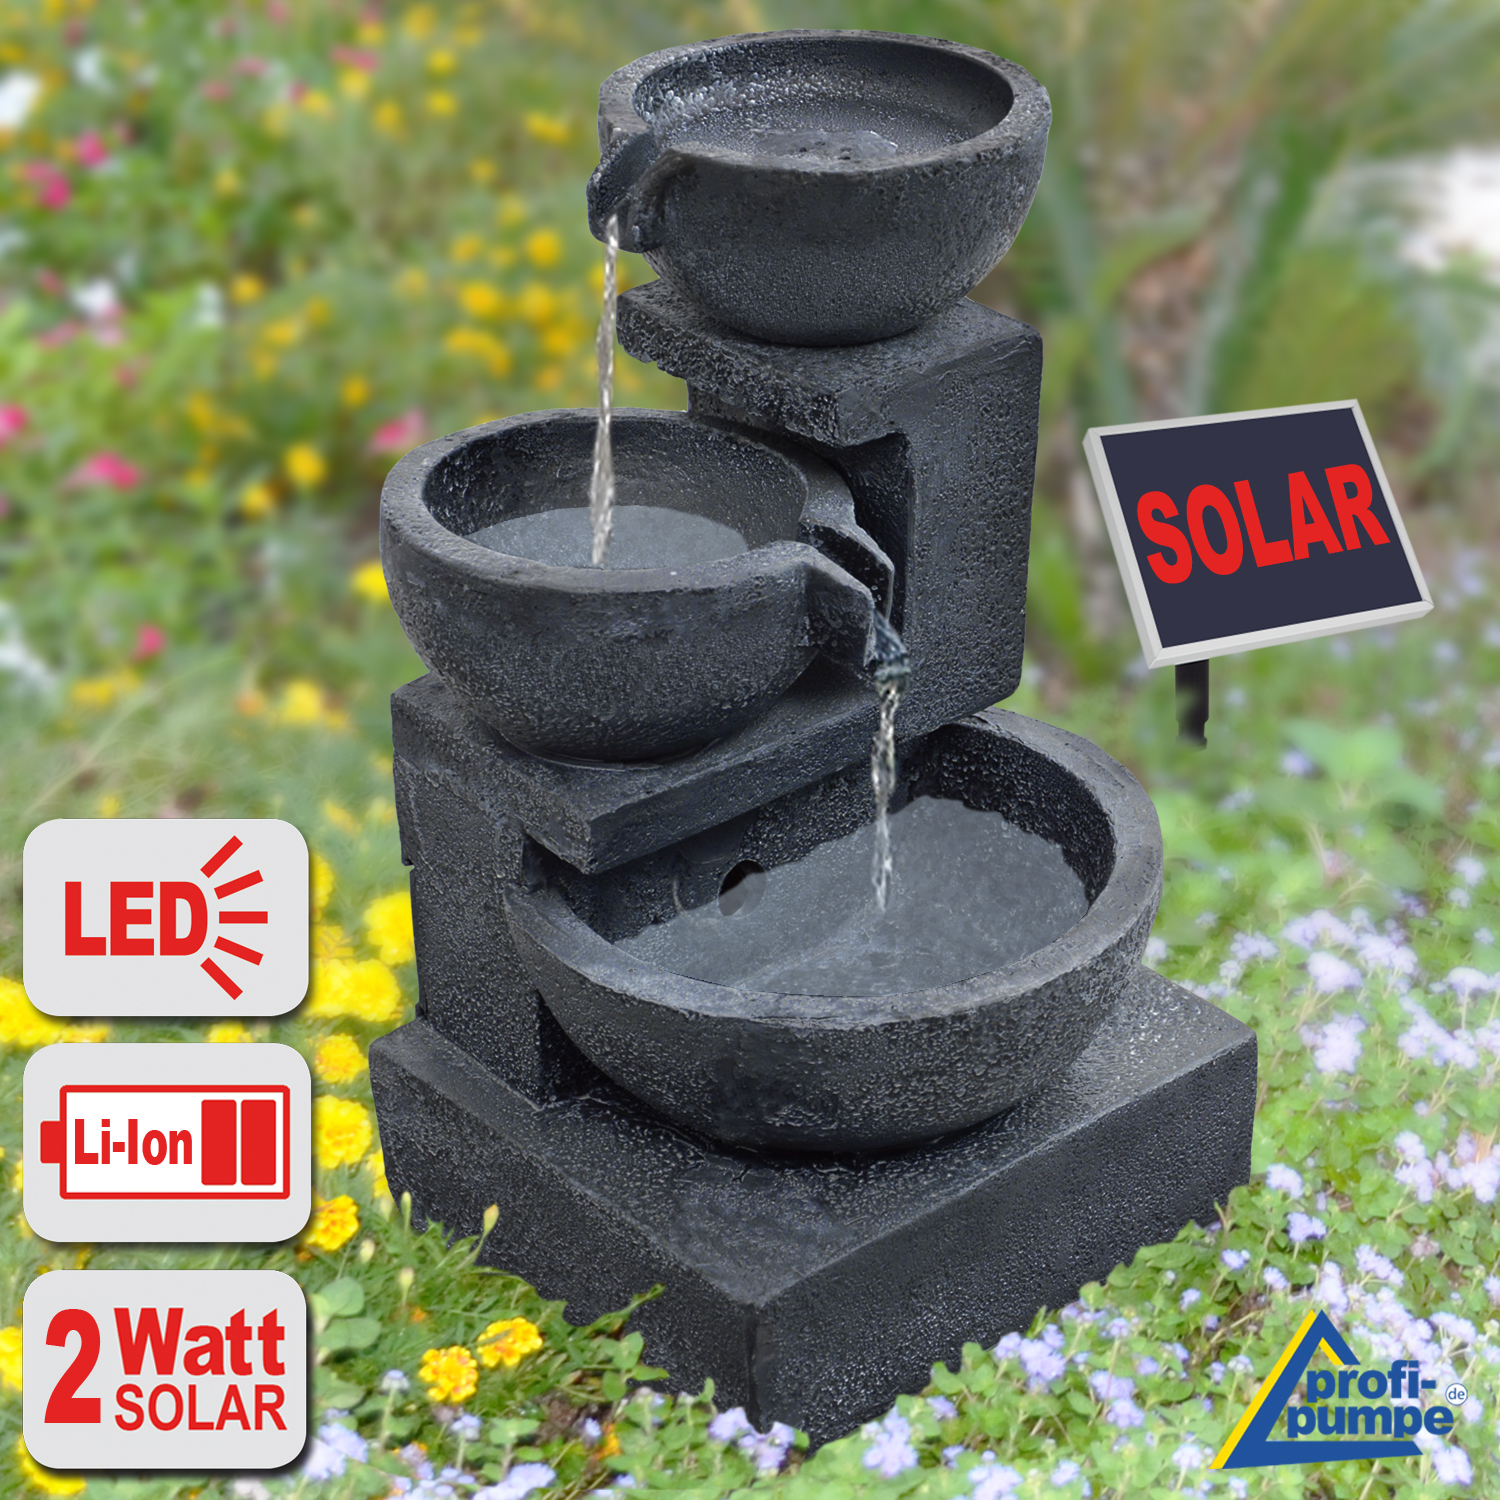 solar brunnen granitschalen kaskade 2 mit liion akku und led licht. Black Bedroom Furniture Sets. Home Design Ideas